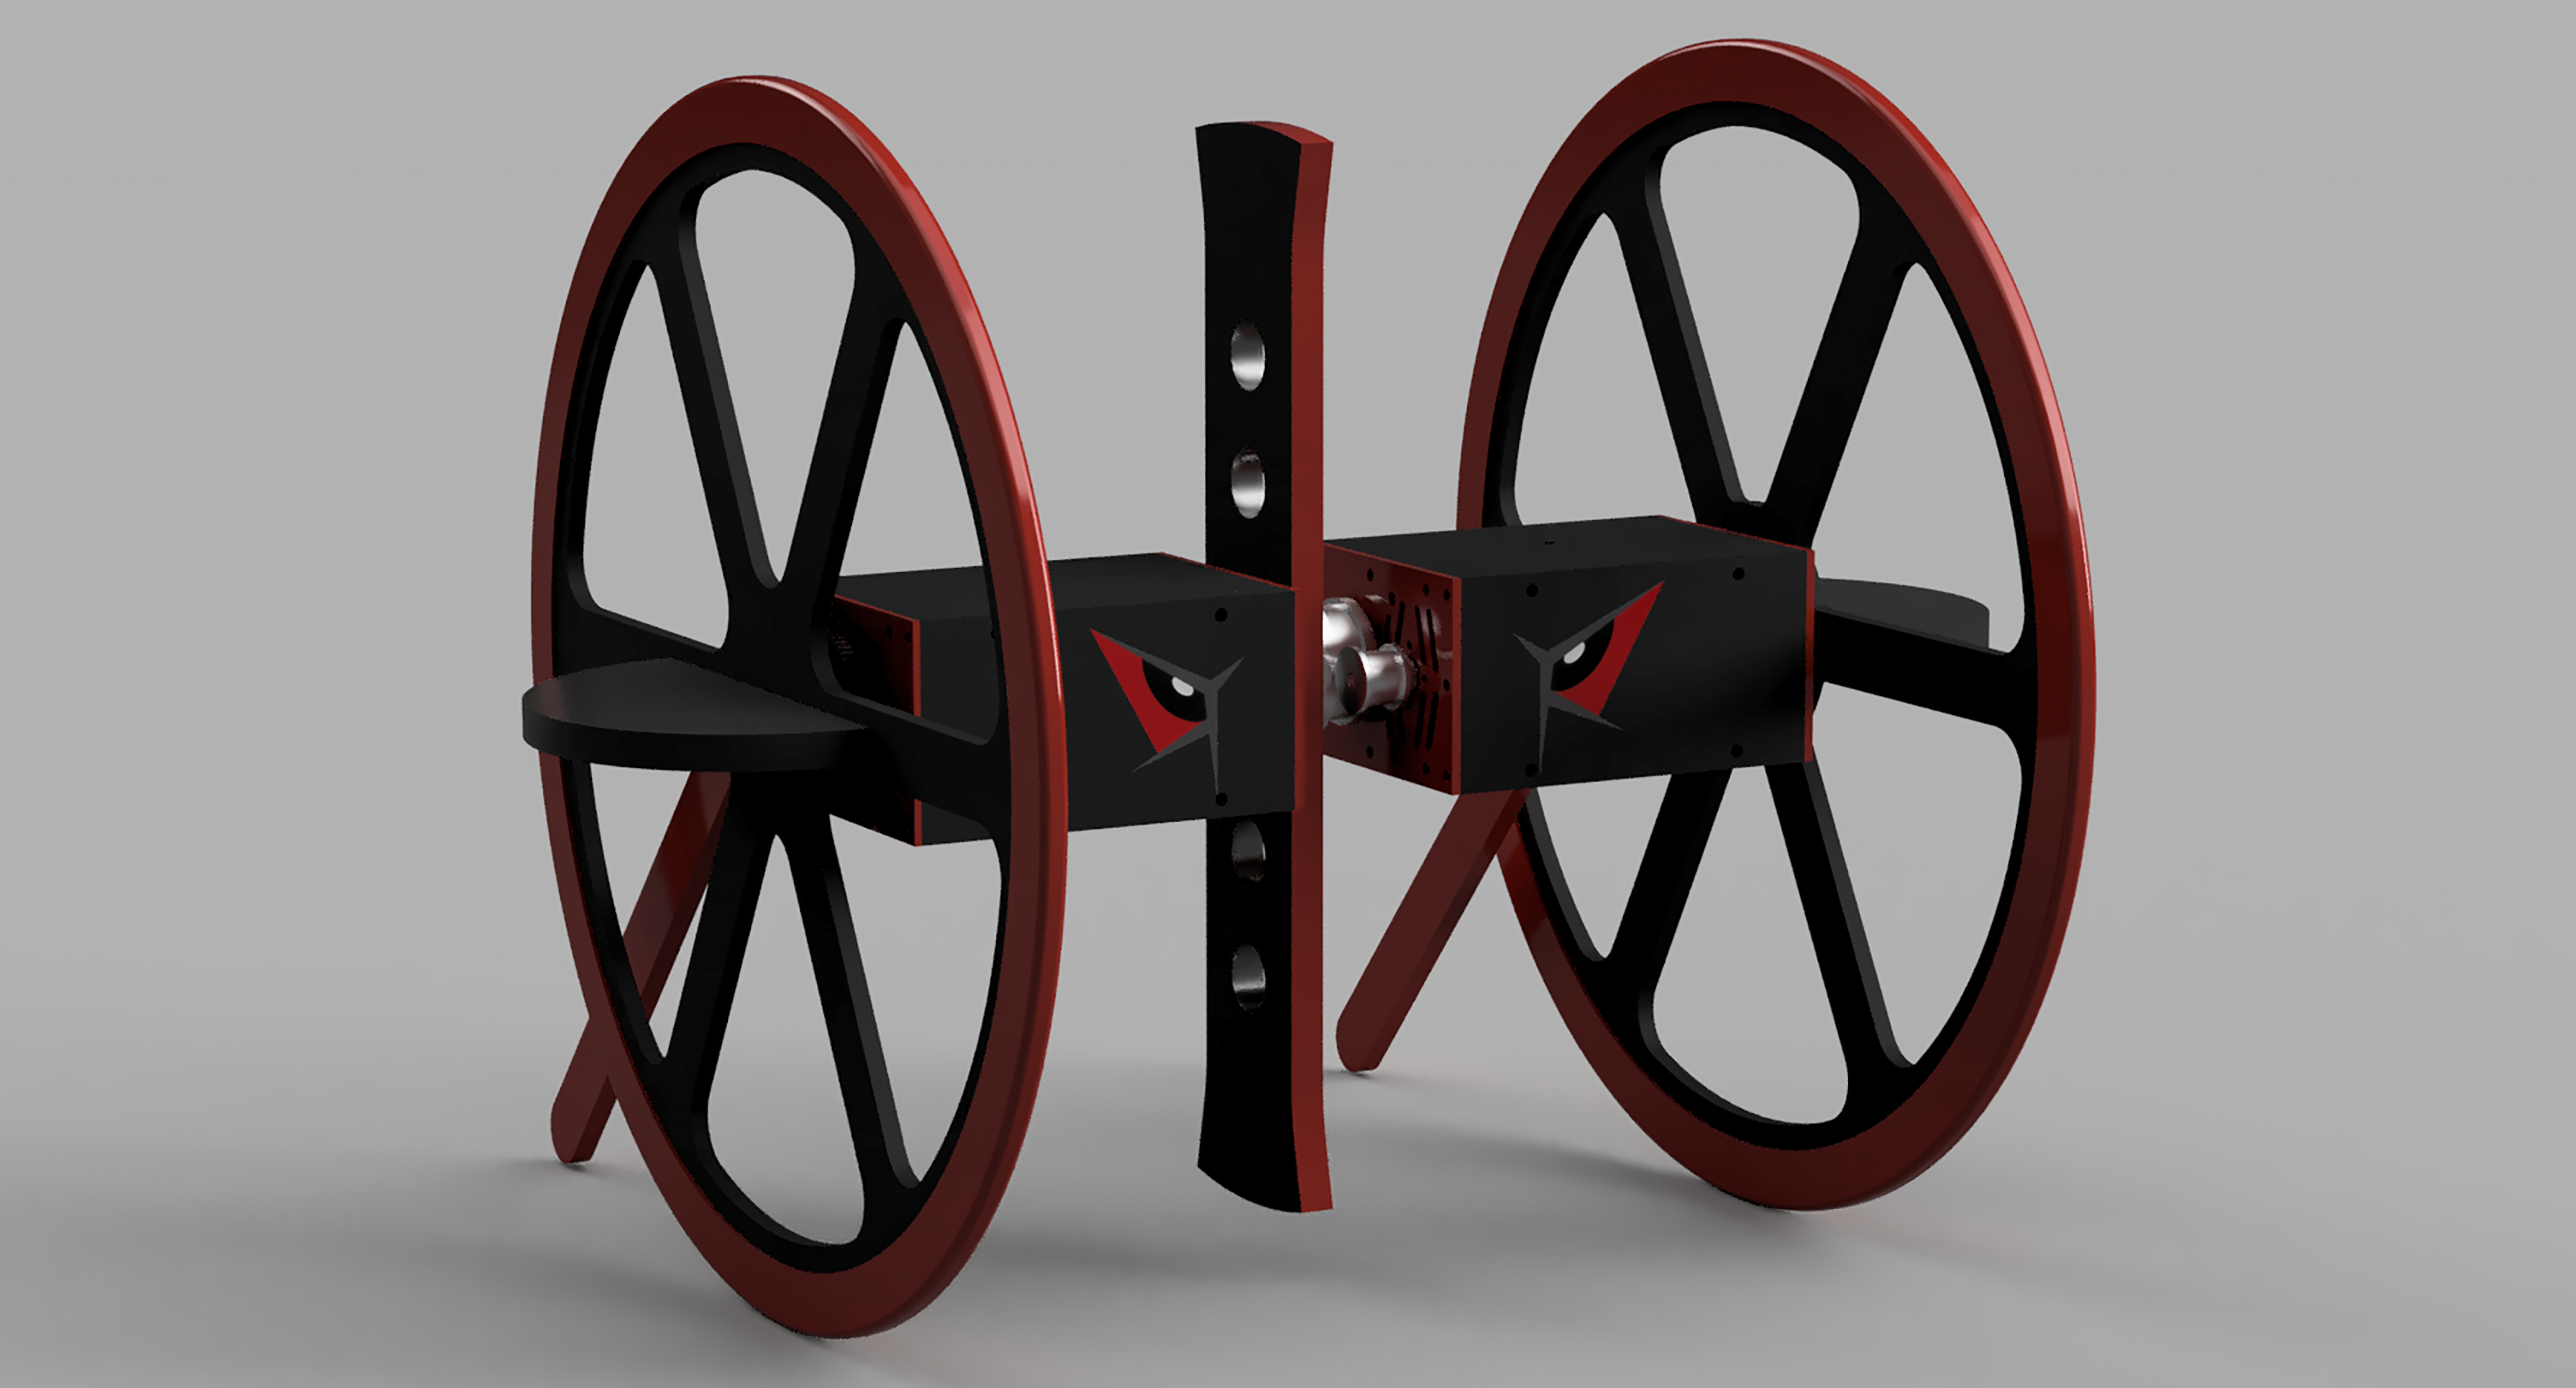 Final CAD render of Straddle